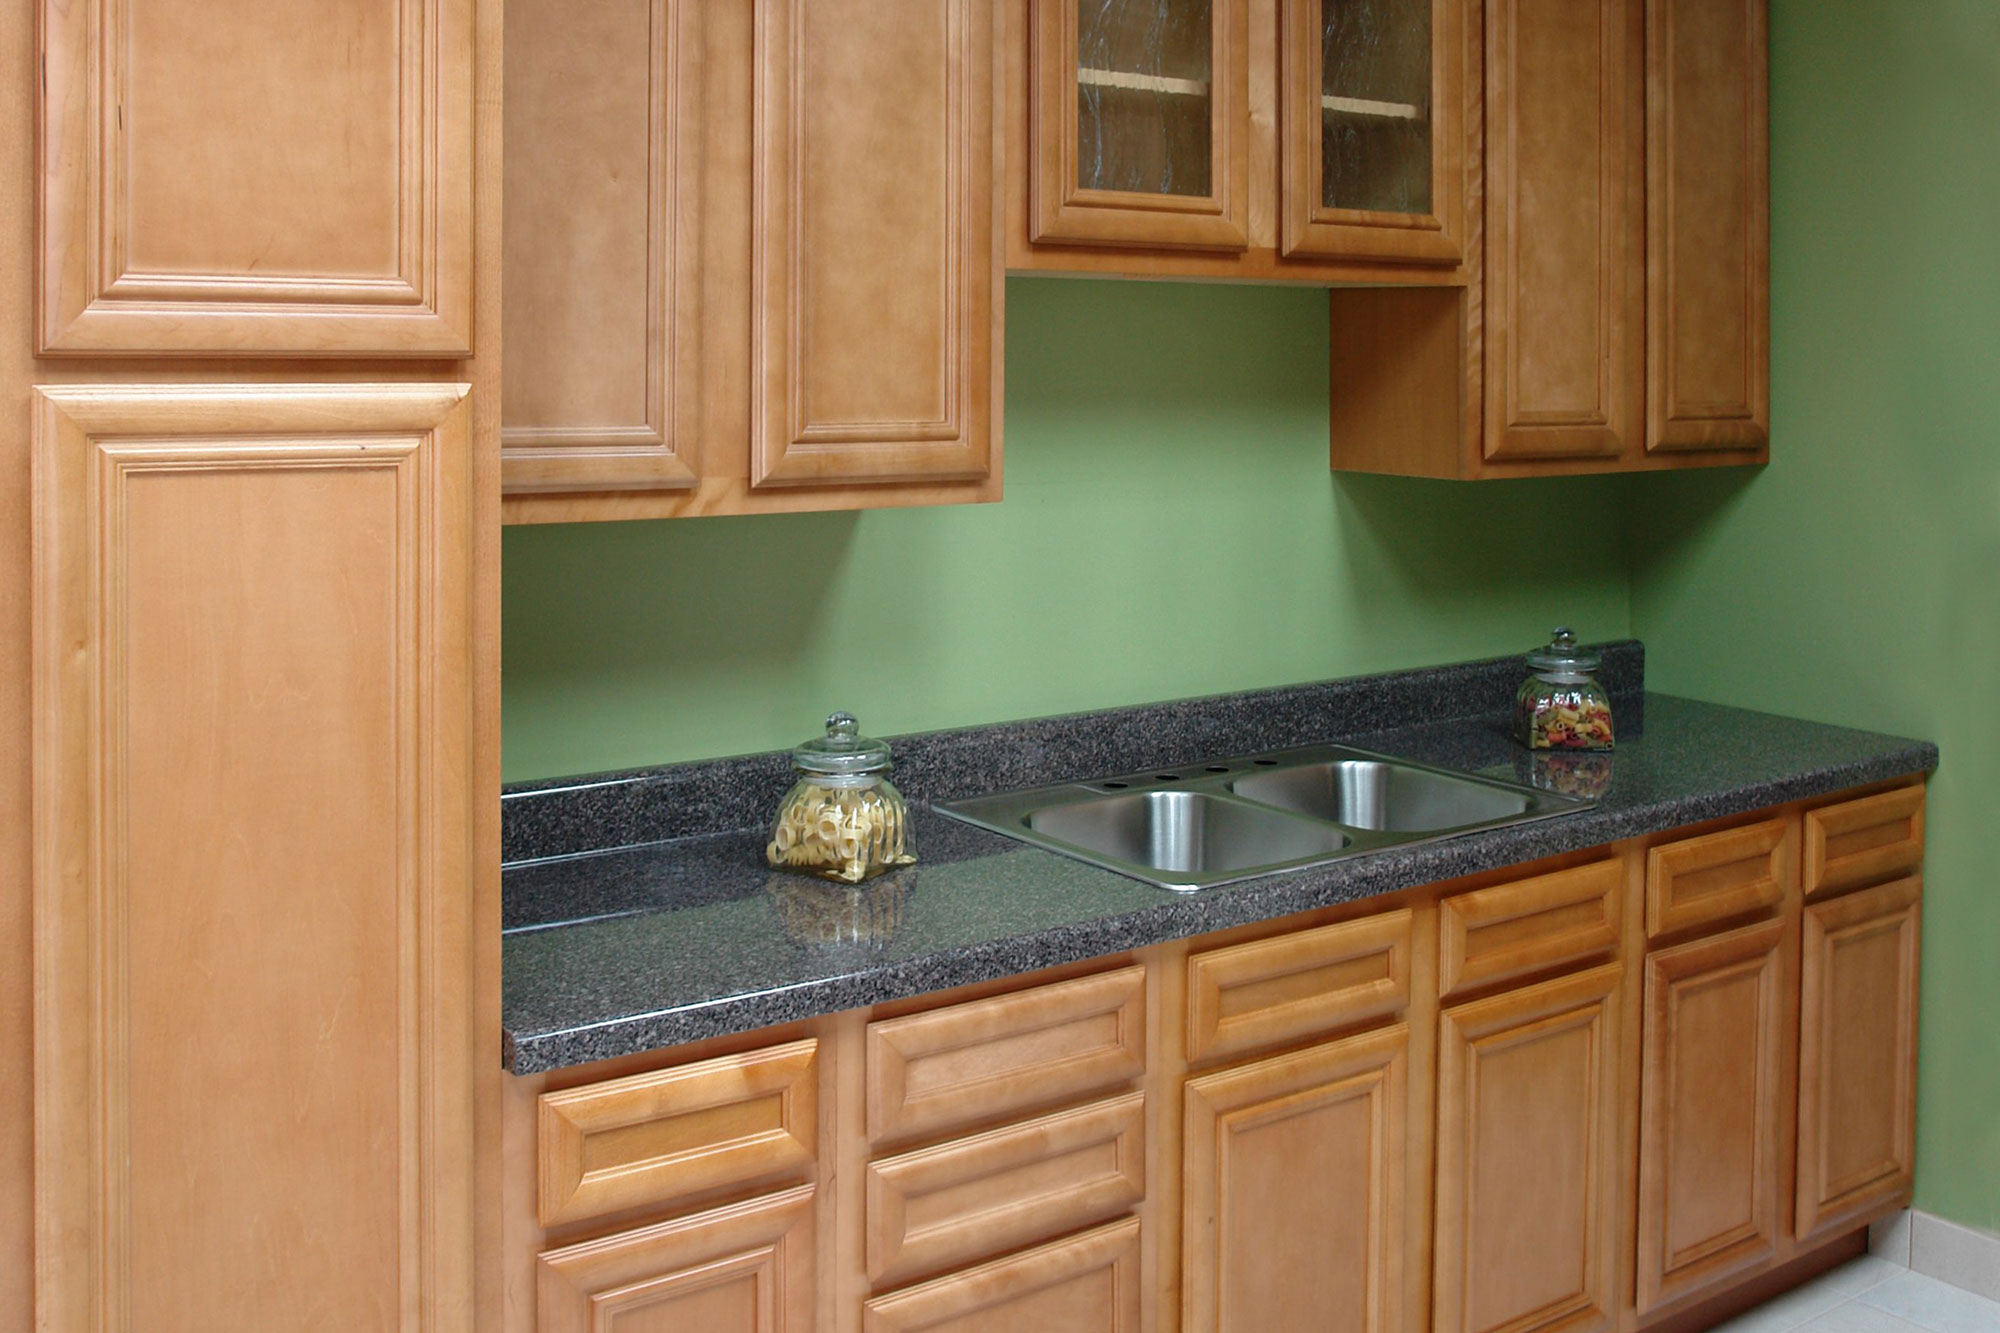 instock kitchen cabinets cool knives  and bath bathroom